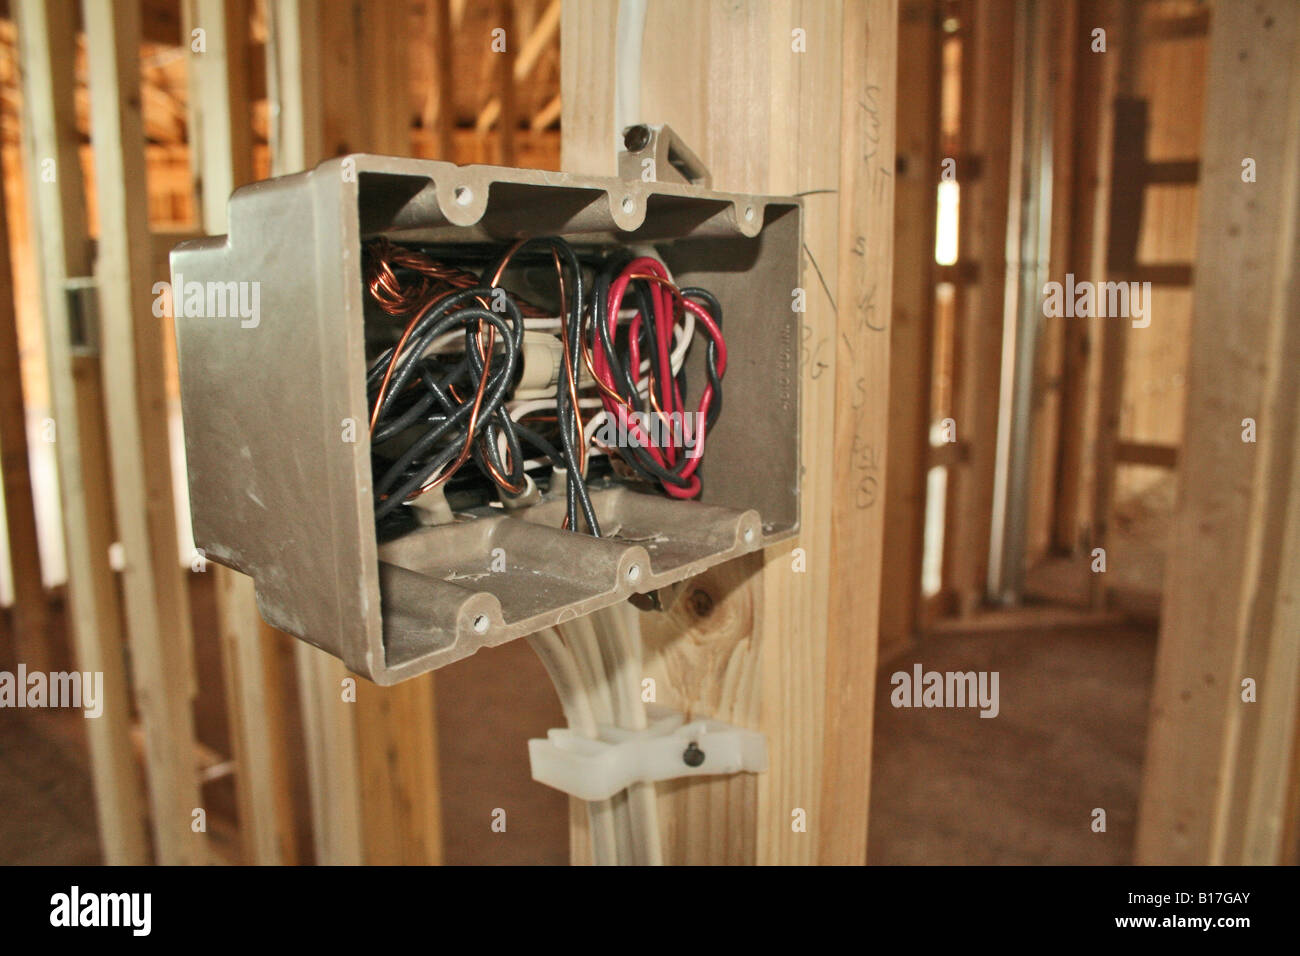 Electrical outlet wiring in new home construction stock for Electrical wiring new construction